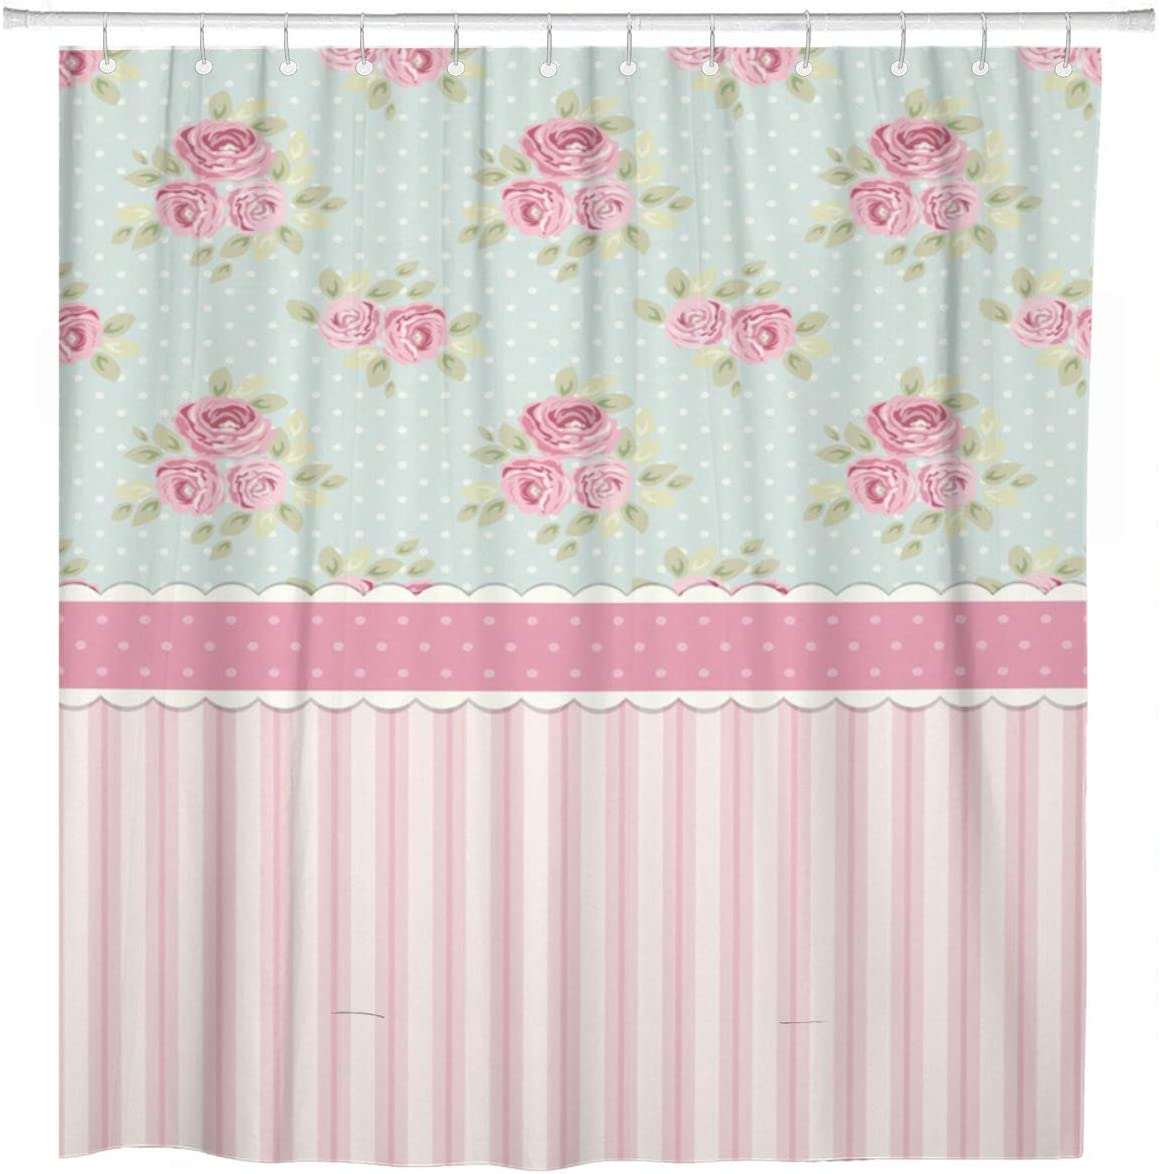 ArtSocket Shower Curtain Colorful Cute Shabby Chic Roses and Polka Dots Home Bathroom Decor Polyester Fabric Waterproof 72 x 72 Inches Set with Hooks